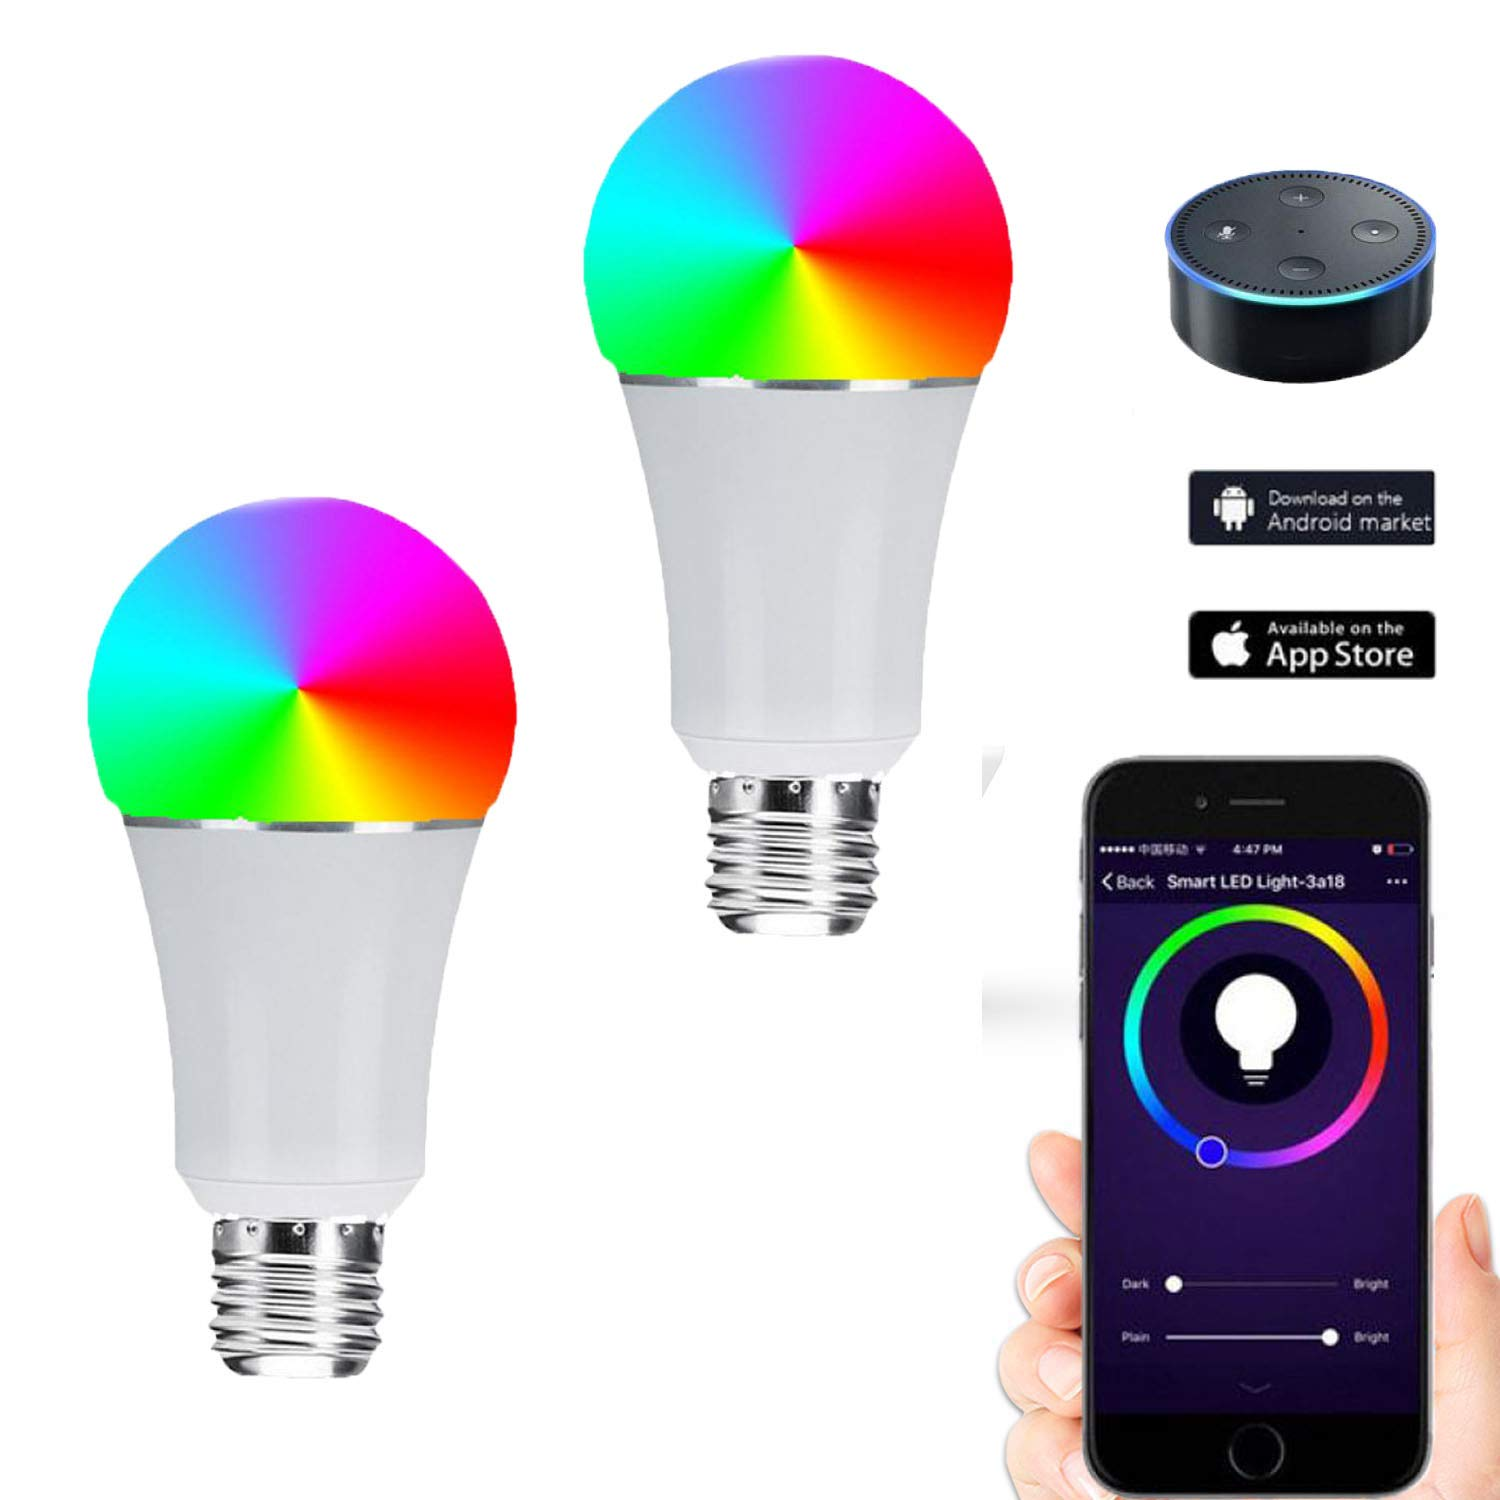 6000K No Hub Required ,E26 Dimmable Multi-Color Led,Compatible with  Alexa Google Assistant IFTTT E26,6pcs Smart WiFi LED Light Bulbs ,7W RGB and White SCHANIN